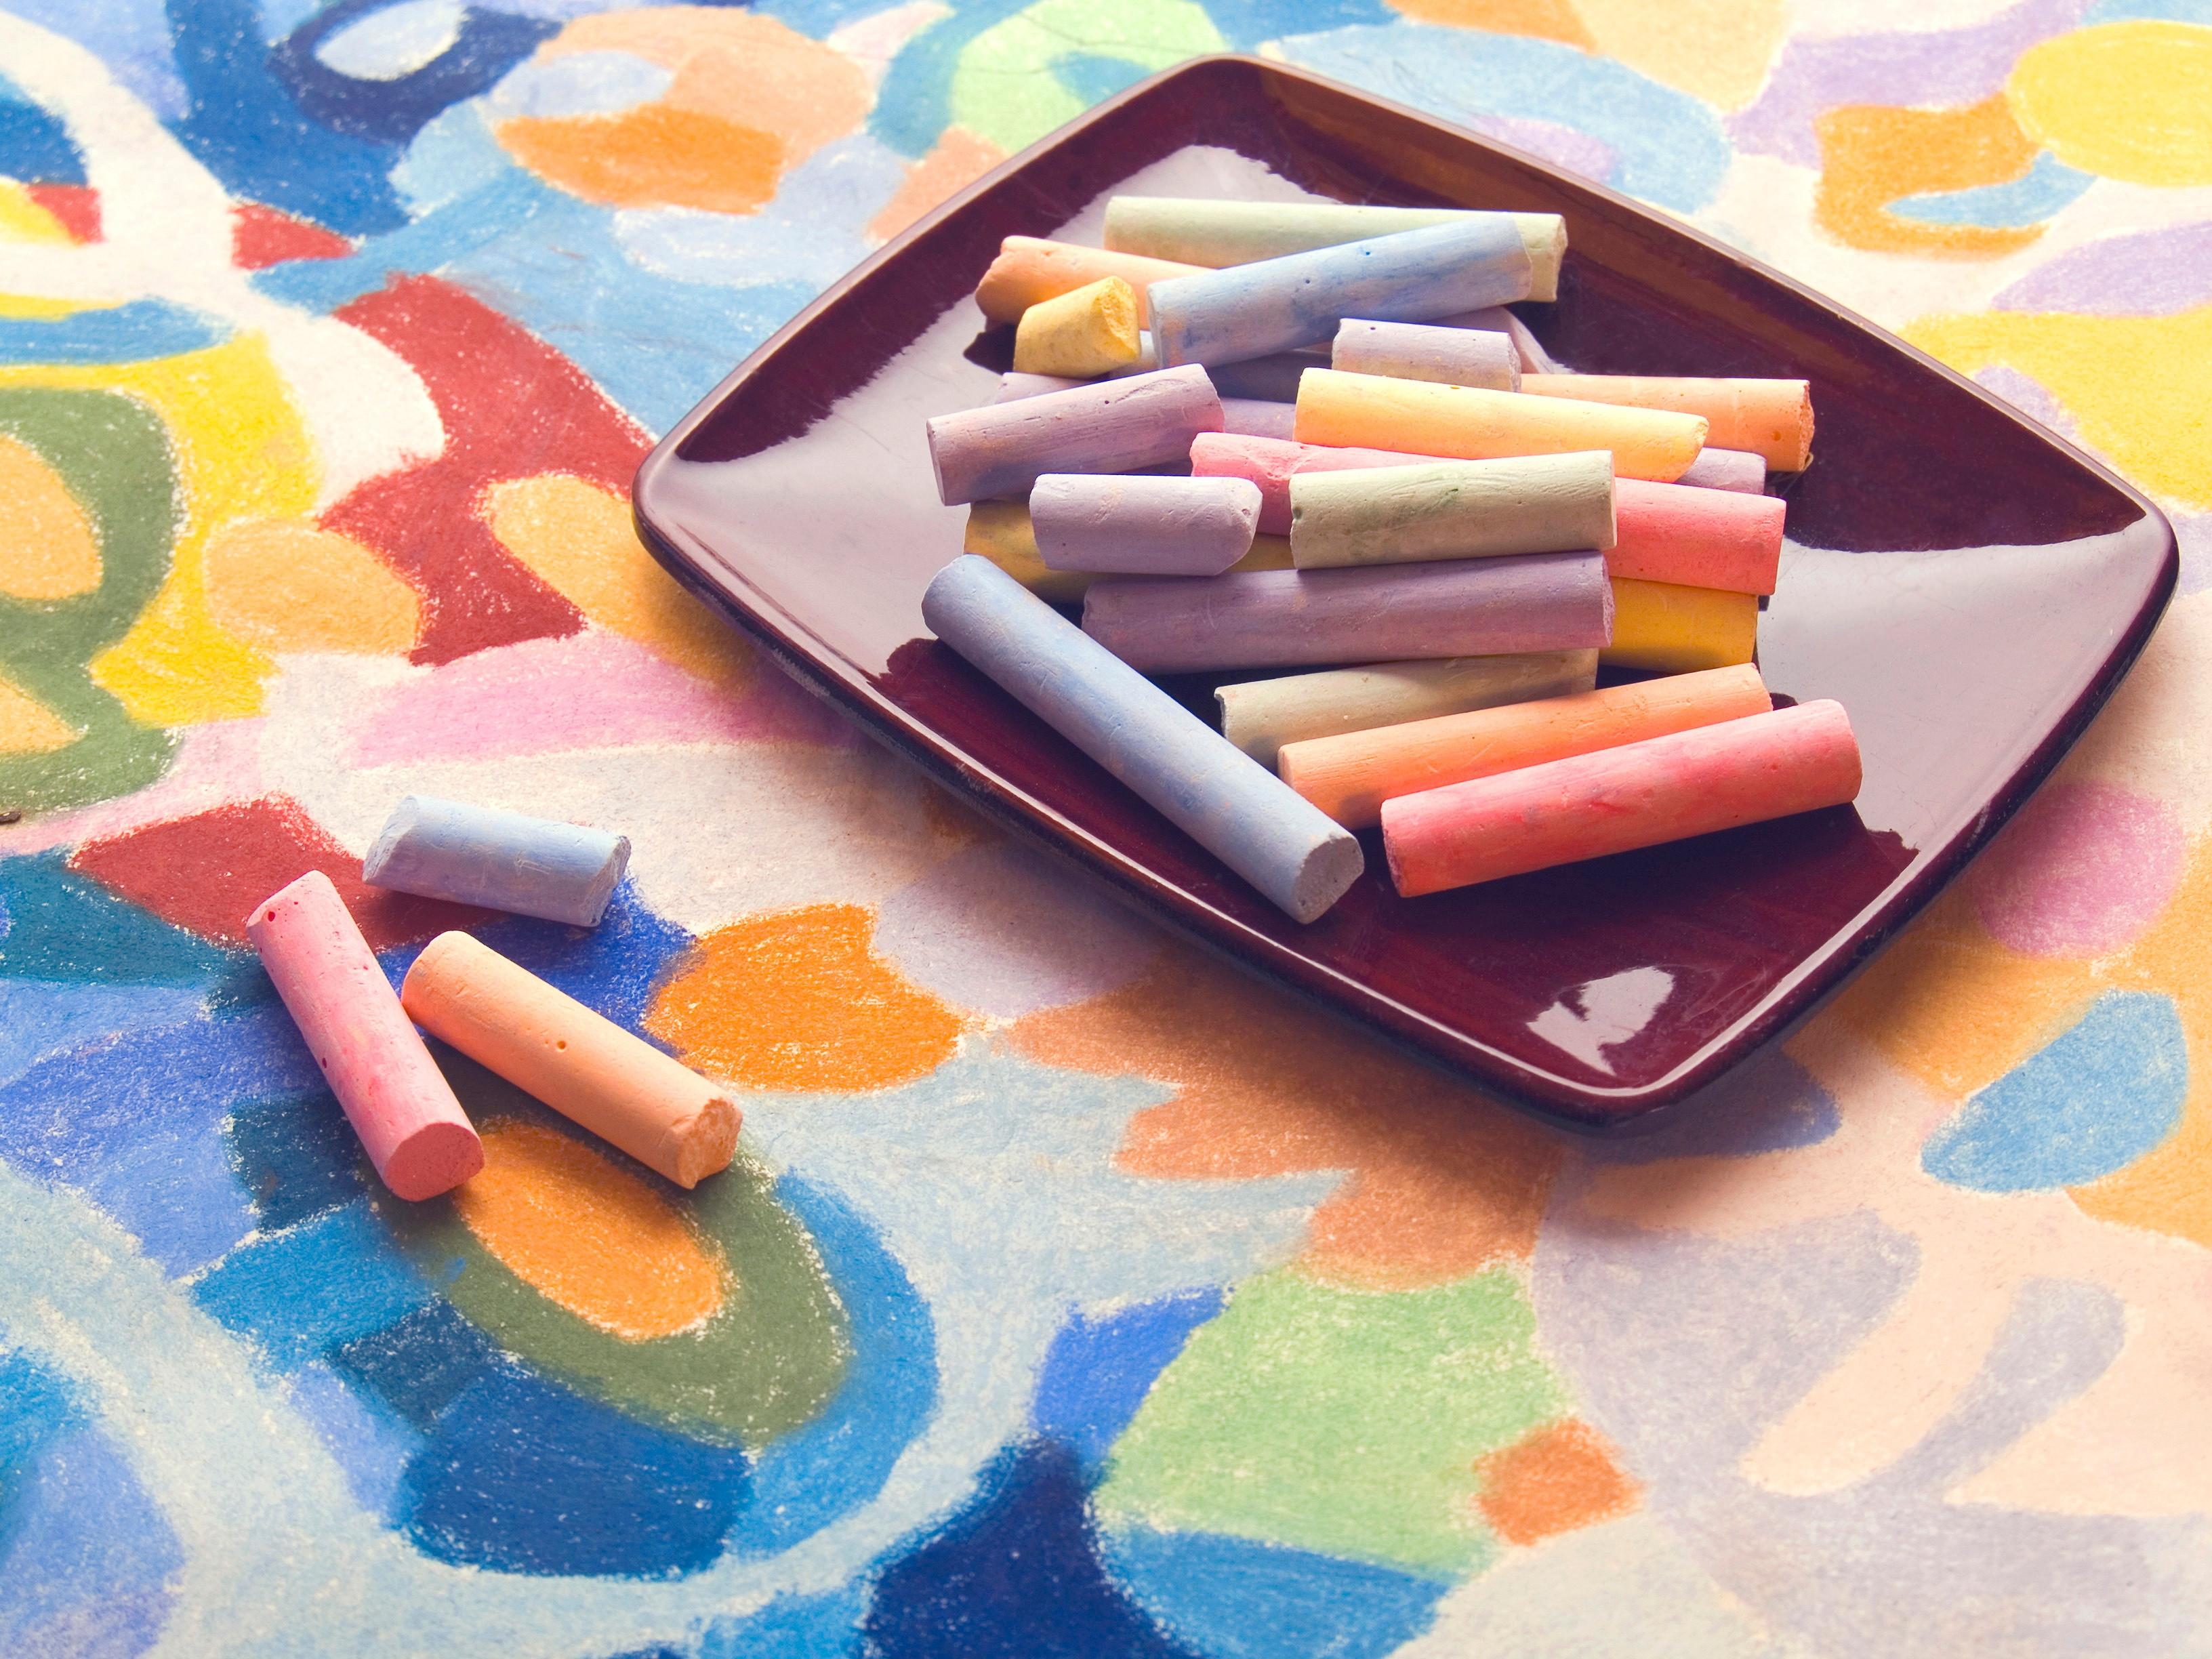 Pastel Chalk in an Article about the NEA Art Works Program